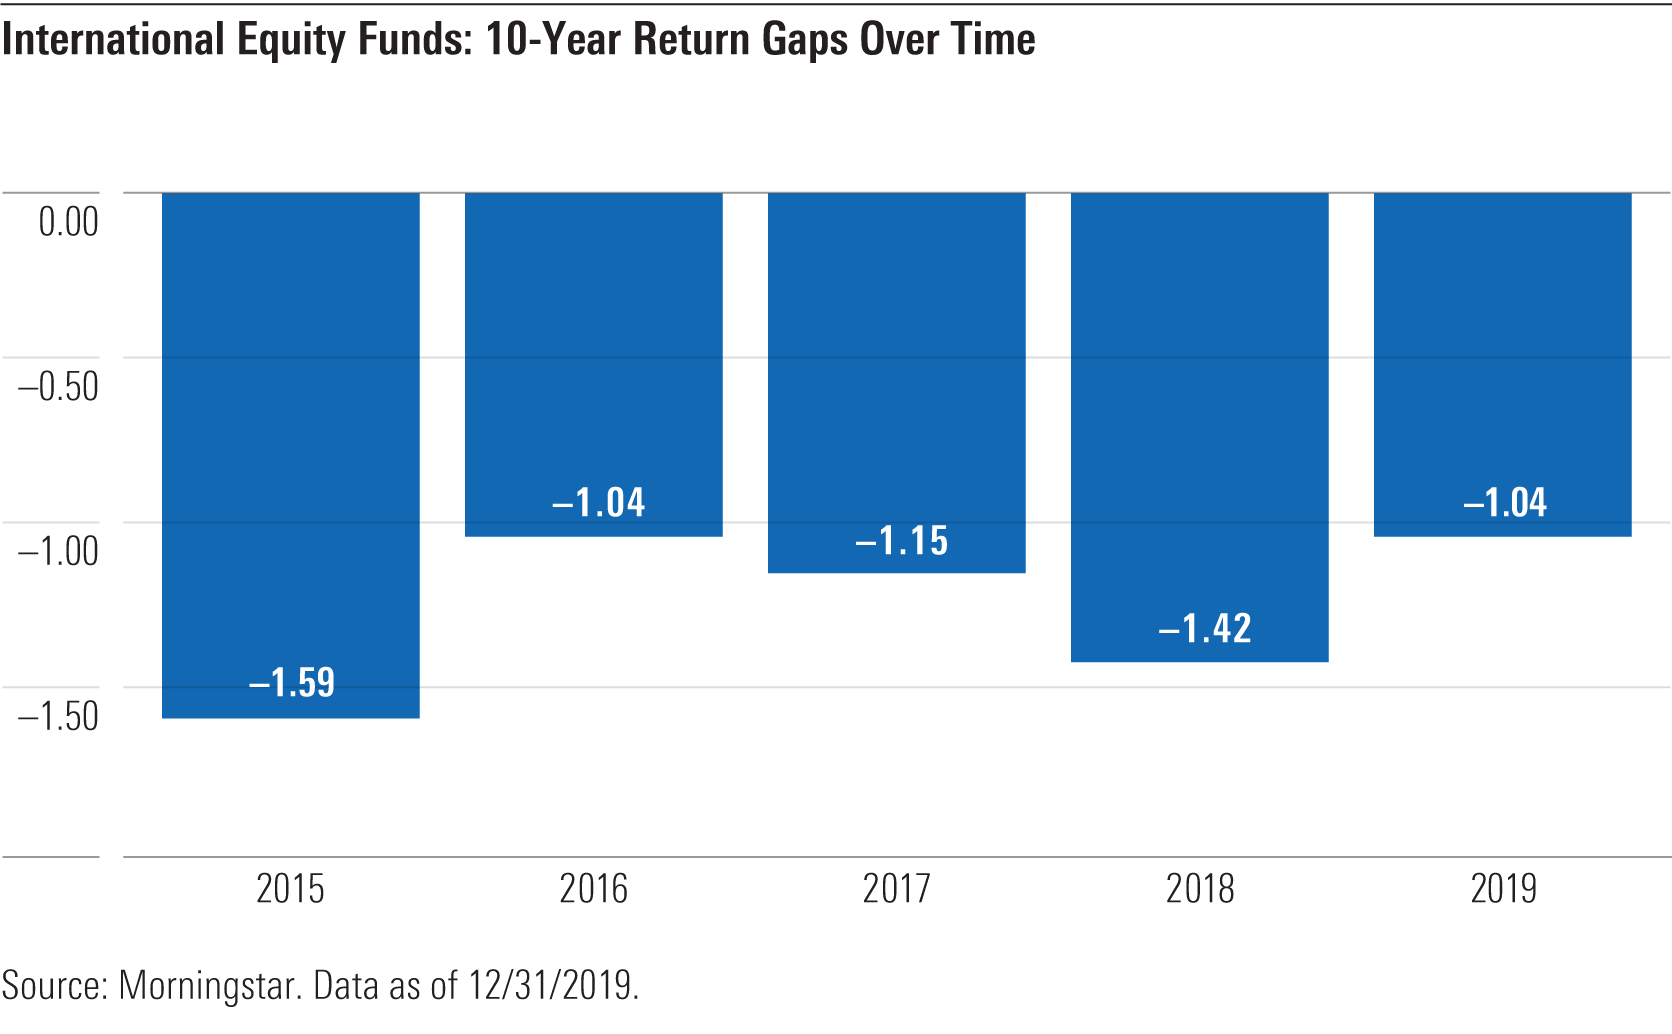 a chart showing Intl equity funds: 10 year return gaps over time